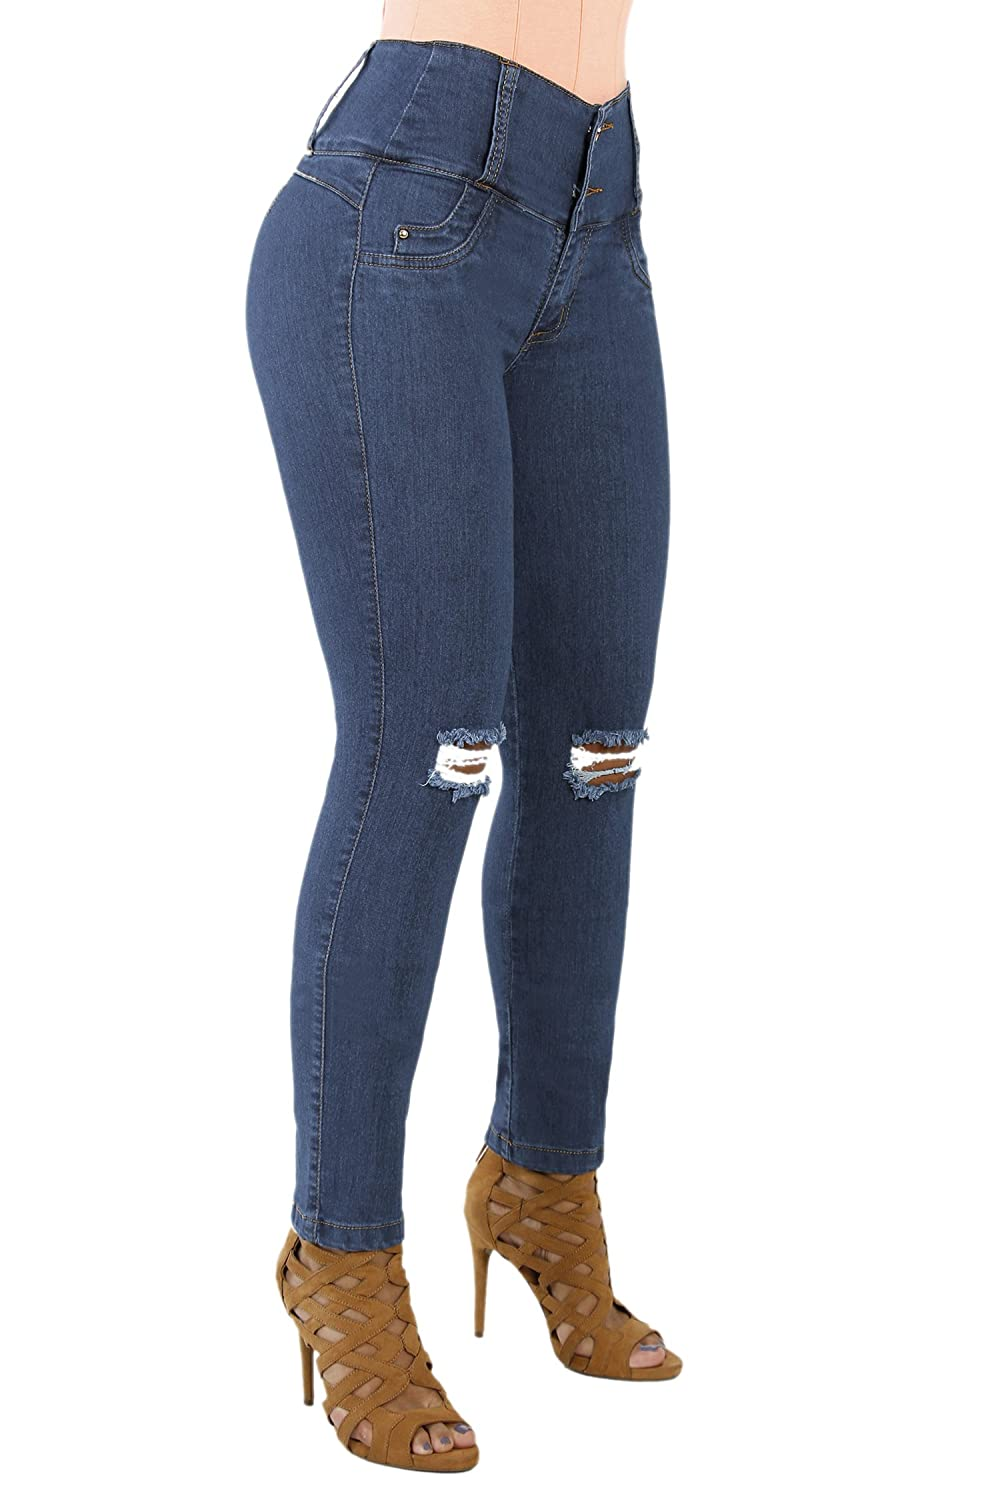 Indigowashedd6 Curvify 764 Women's ButtLifting Skinny Jeans   HighRise Waist, Brazilian Style